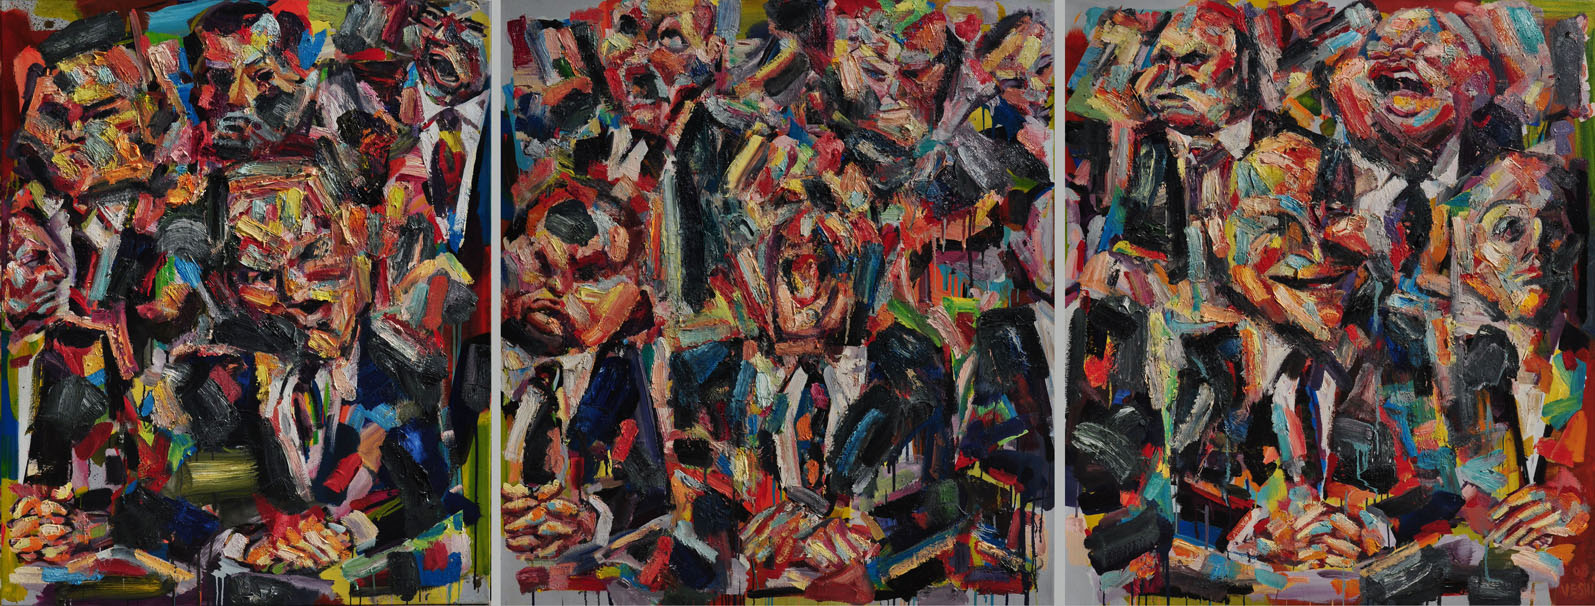 Snapshot, 2008. Oil on canvas, 50 inch x 130 inch